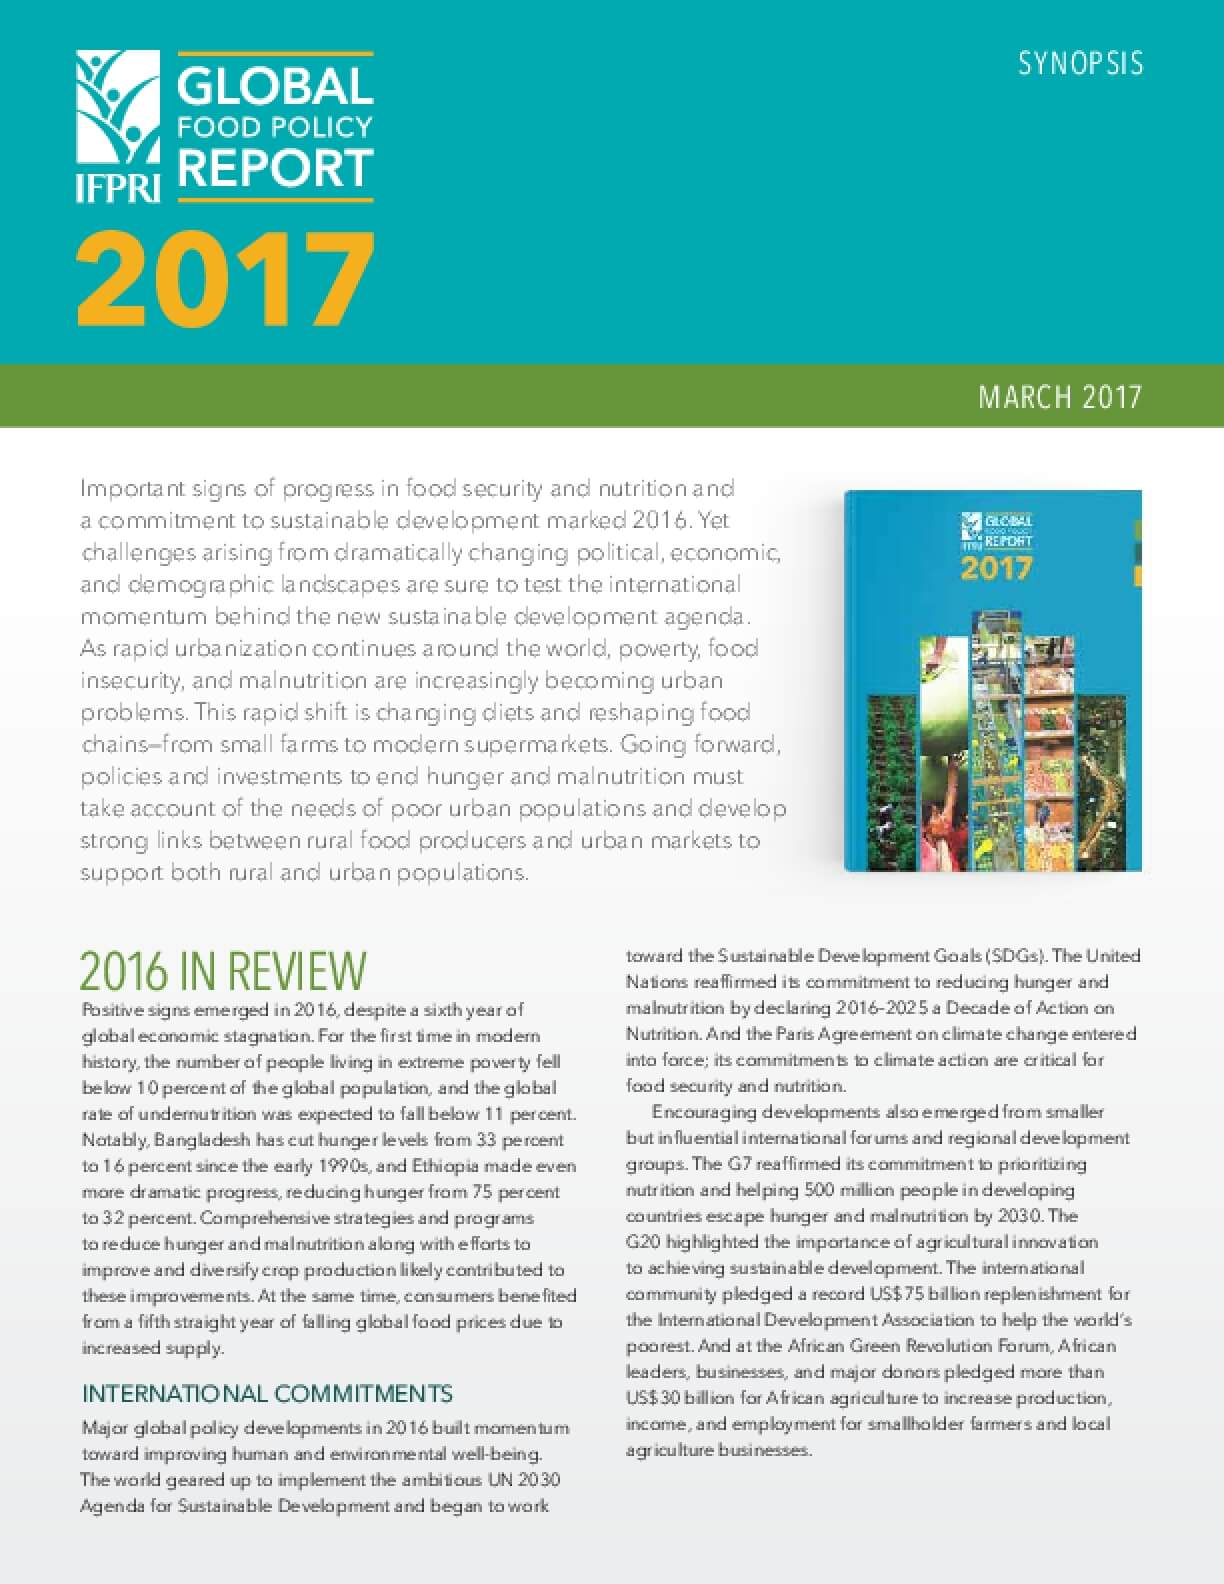 Global Food Policy Report 2017, Executive Summary